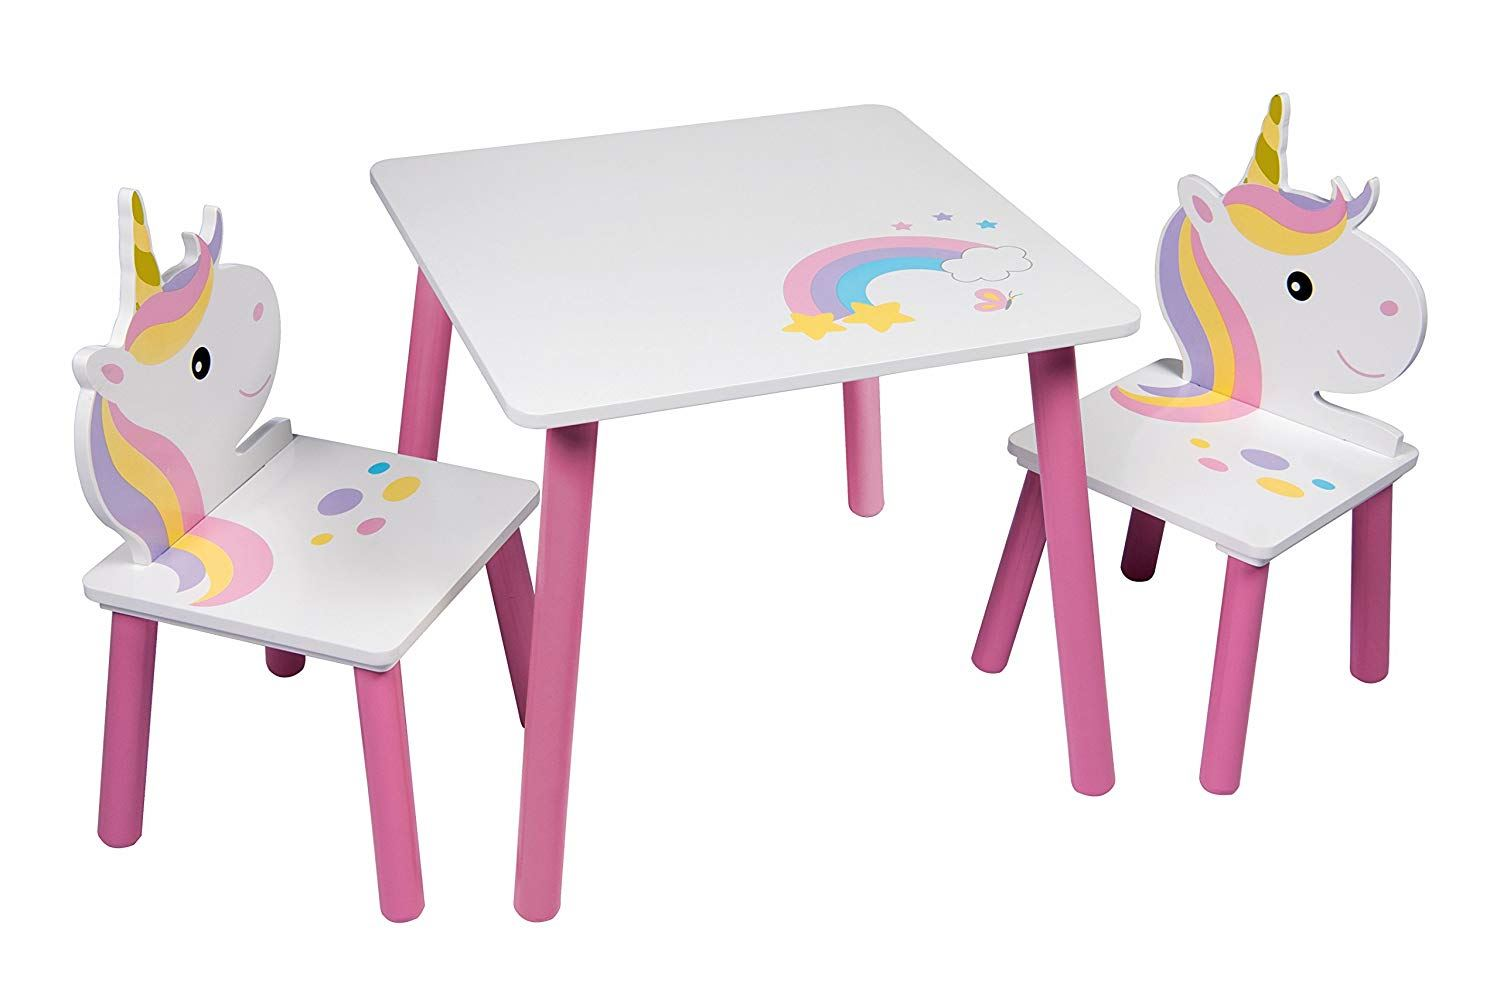 Unicorn Table Amp Chairs Set Pink Wooden Kids Toddlers